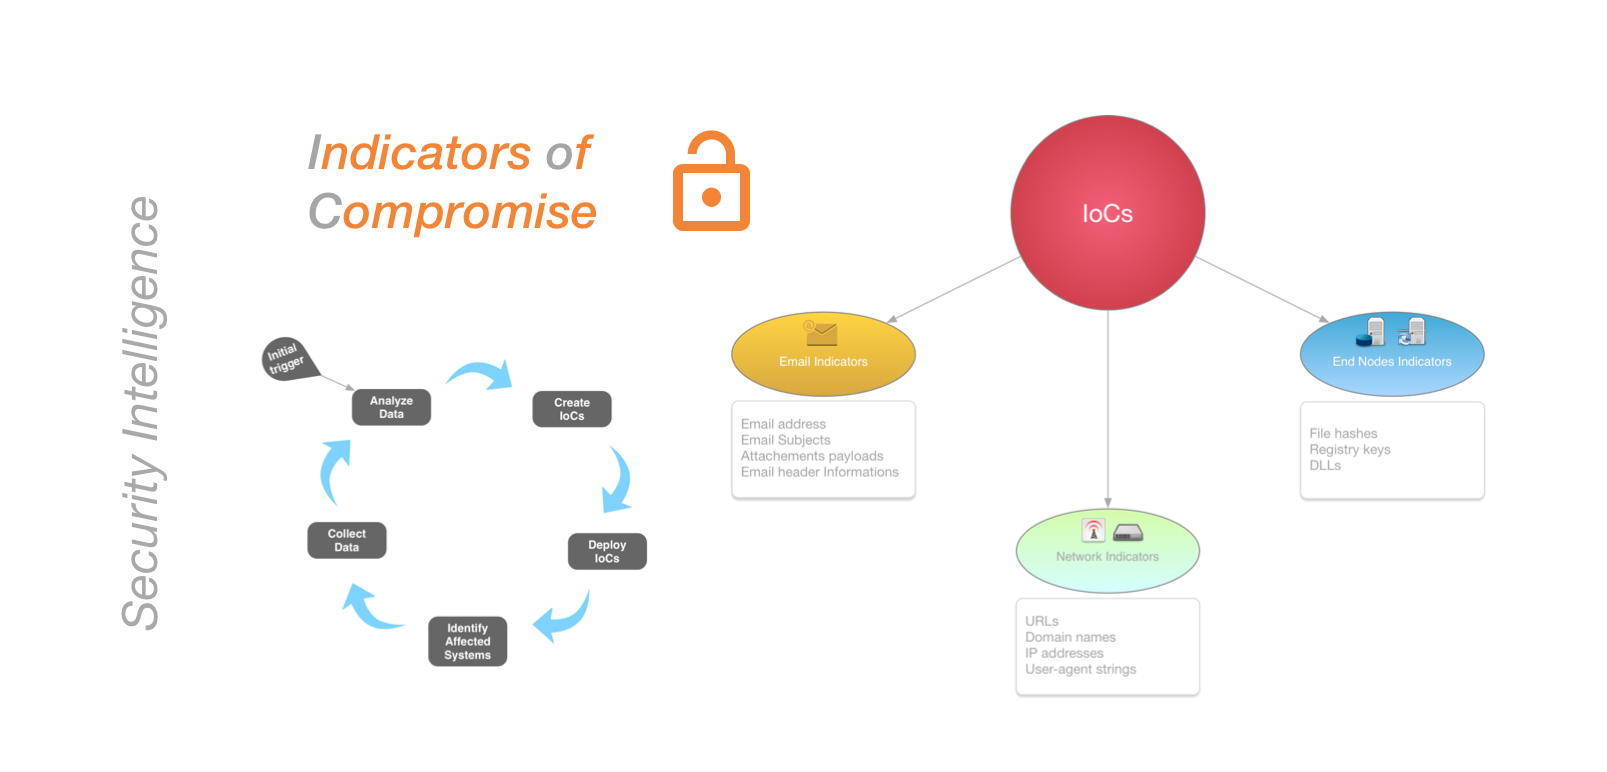 Indicators of Compromise in Threat Intelligence - Let's